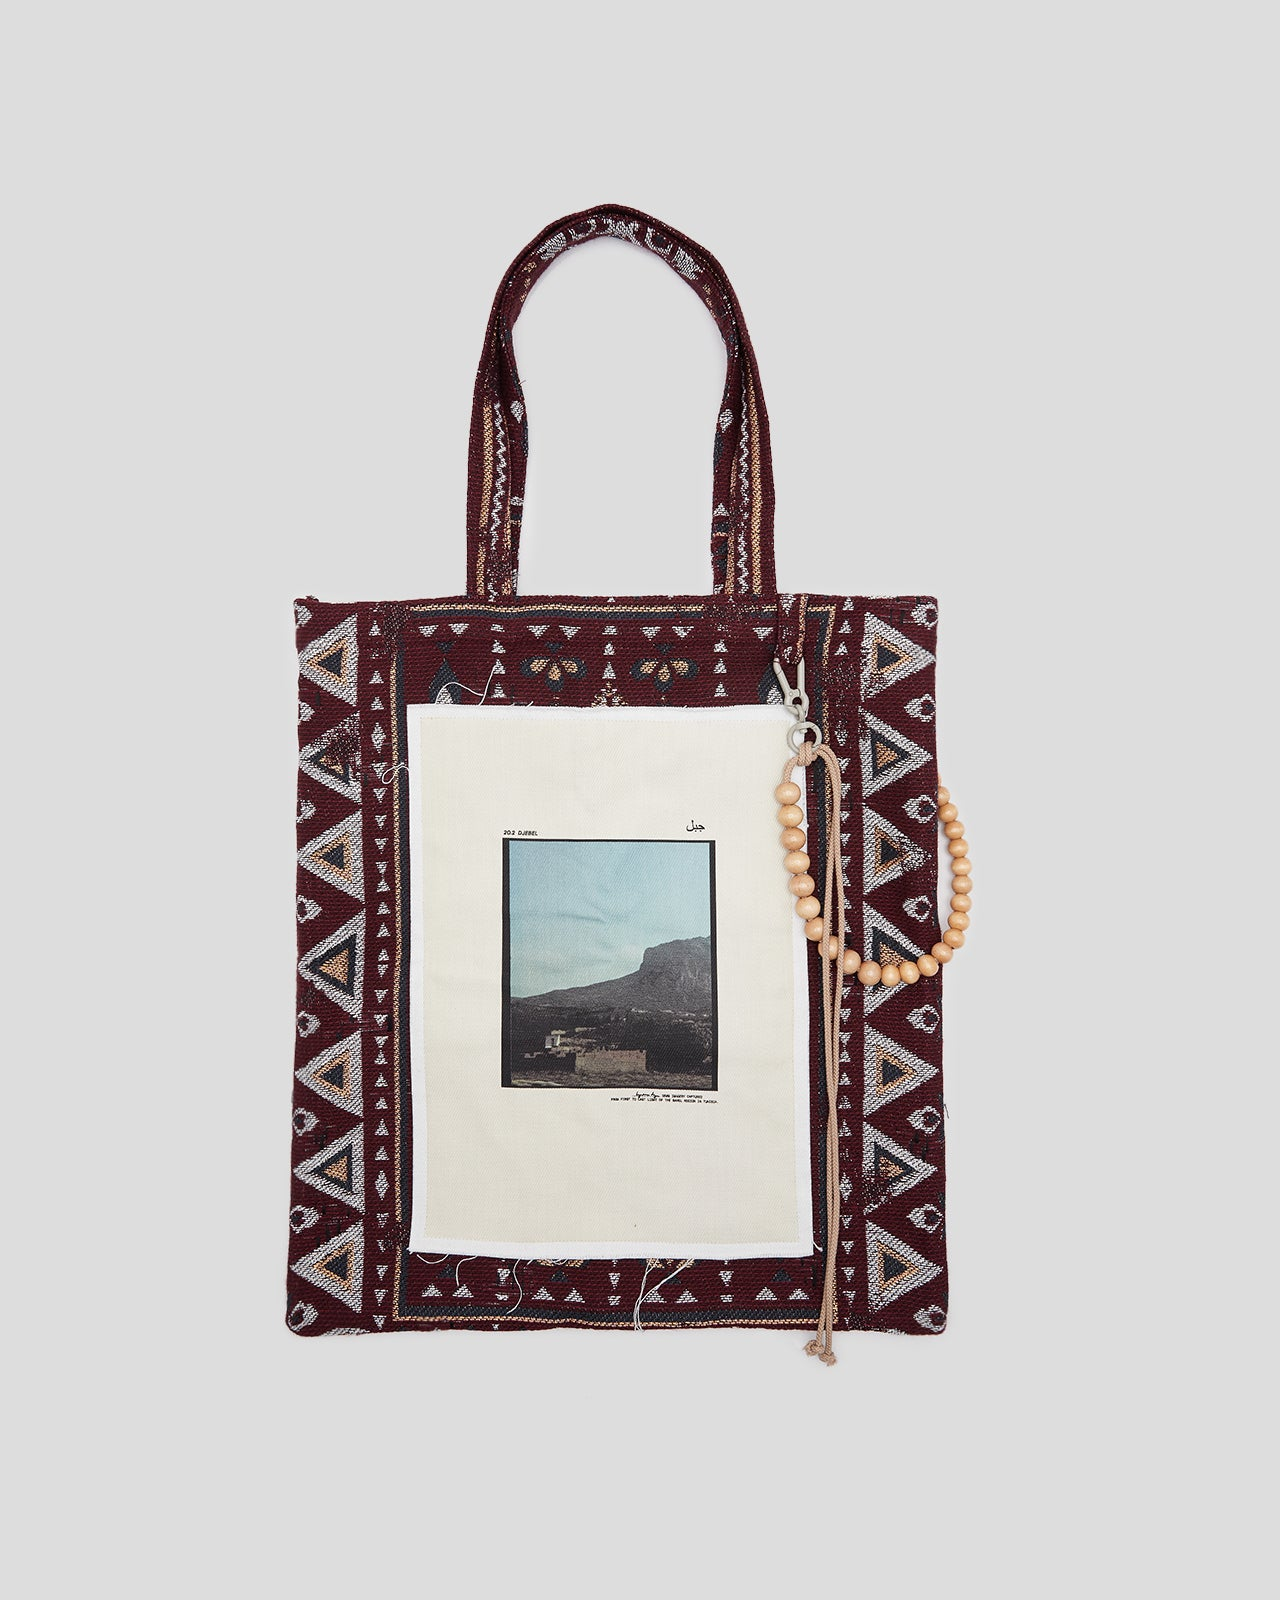 Mountain Large Tote Bag in Burgundy